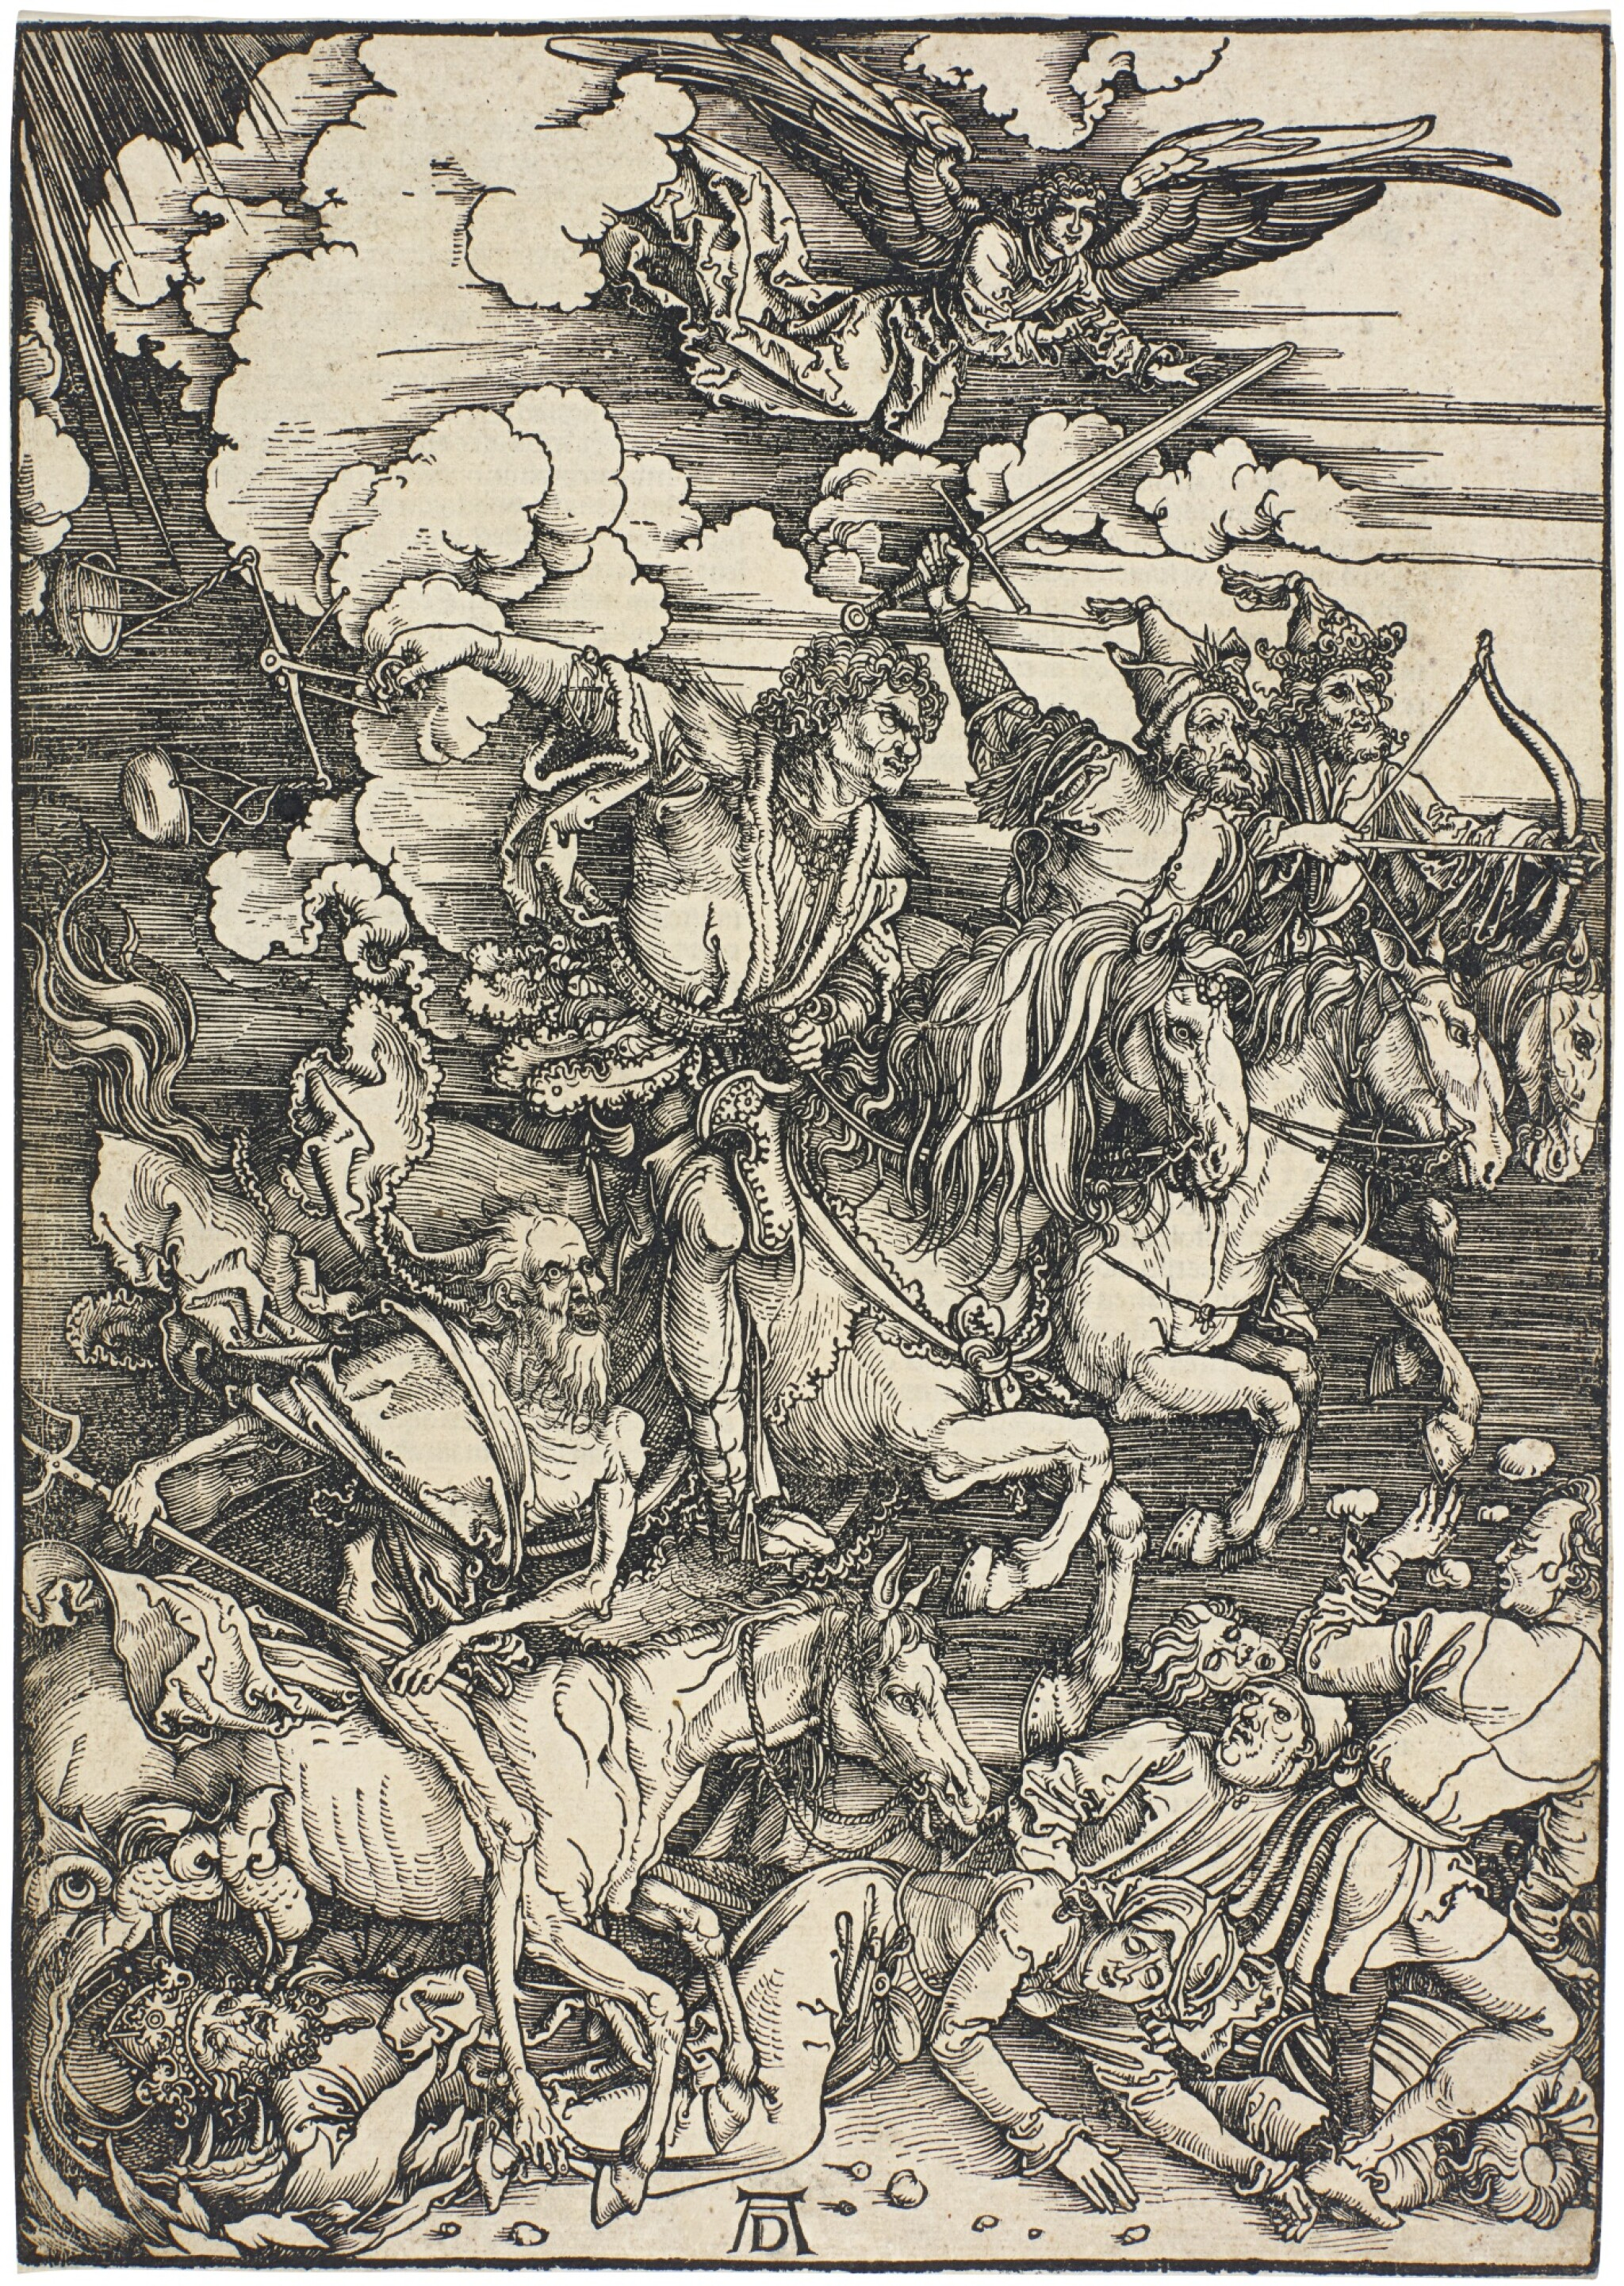 ALBRECHT DÜRER  |  THE FOUR HORSEMEN OF THE APOCALYPSE (B. 64; M., HOLL. 167)